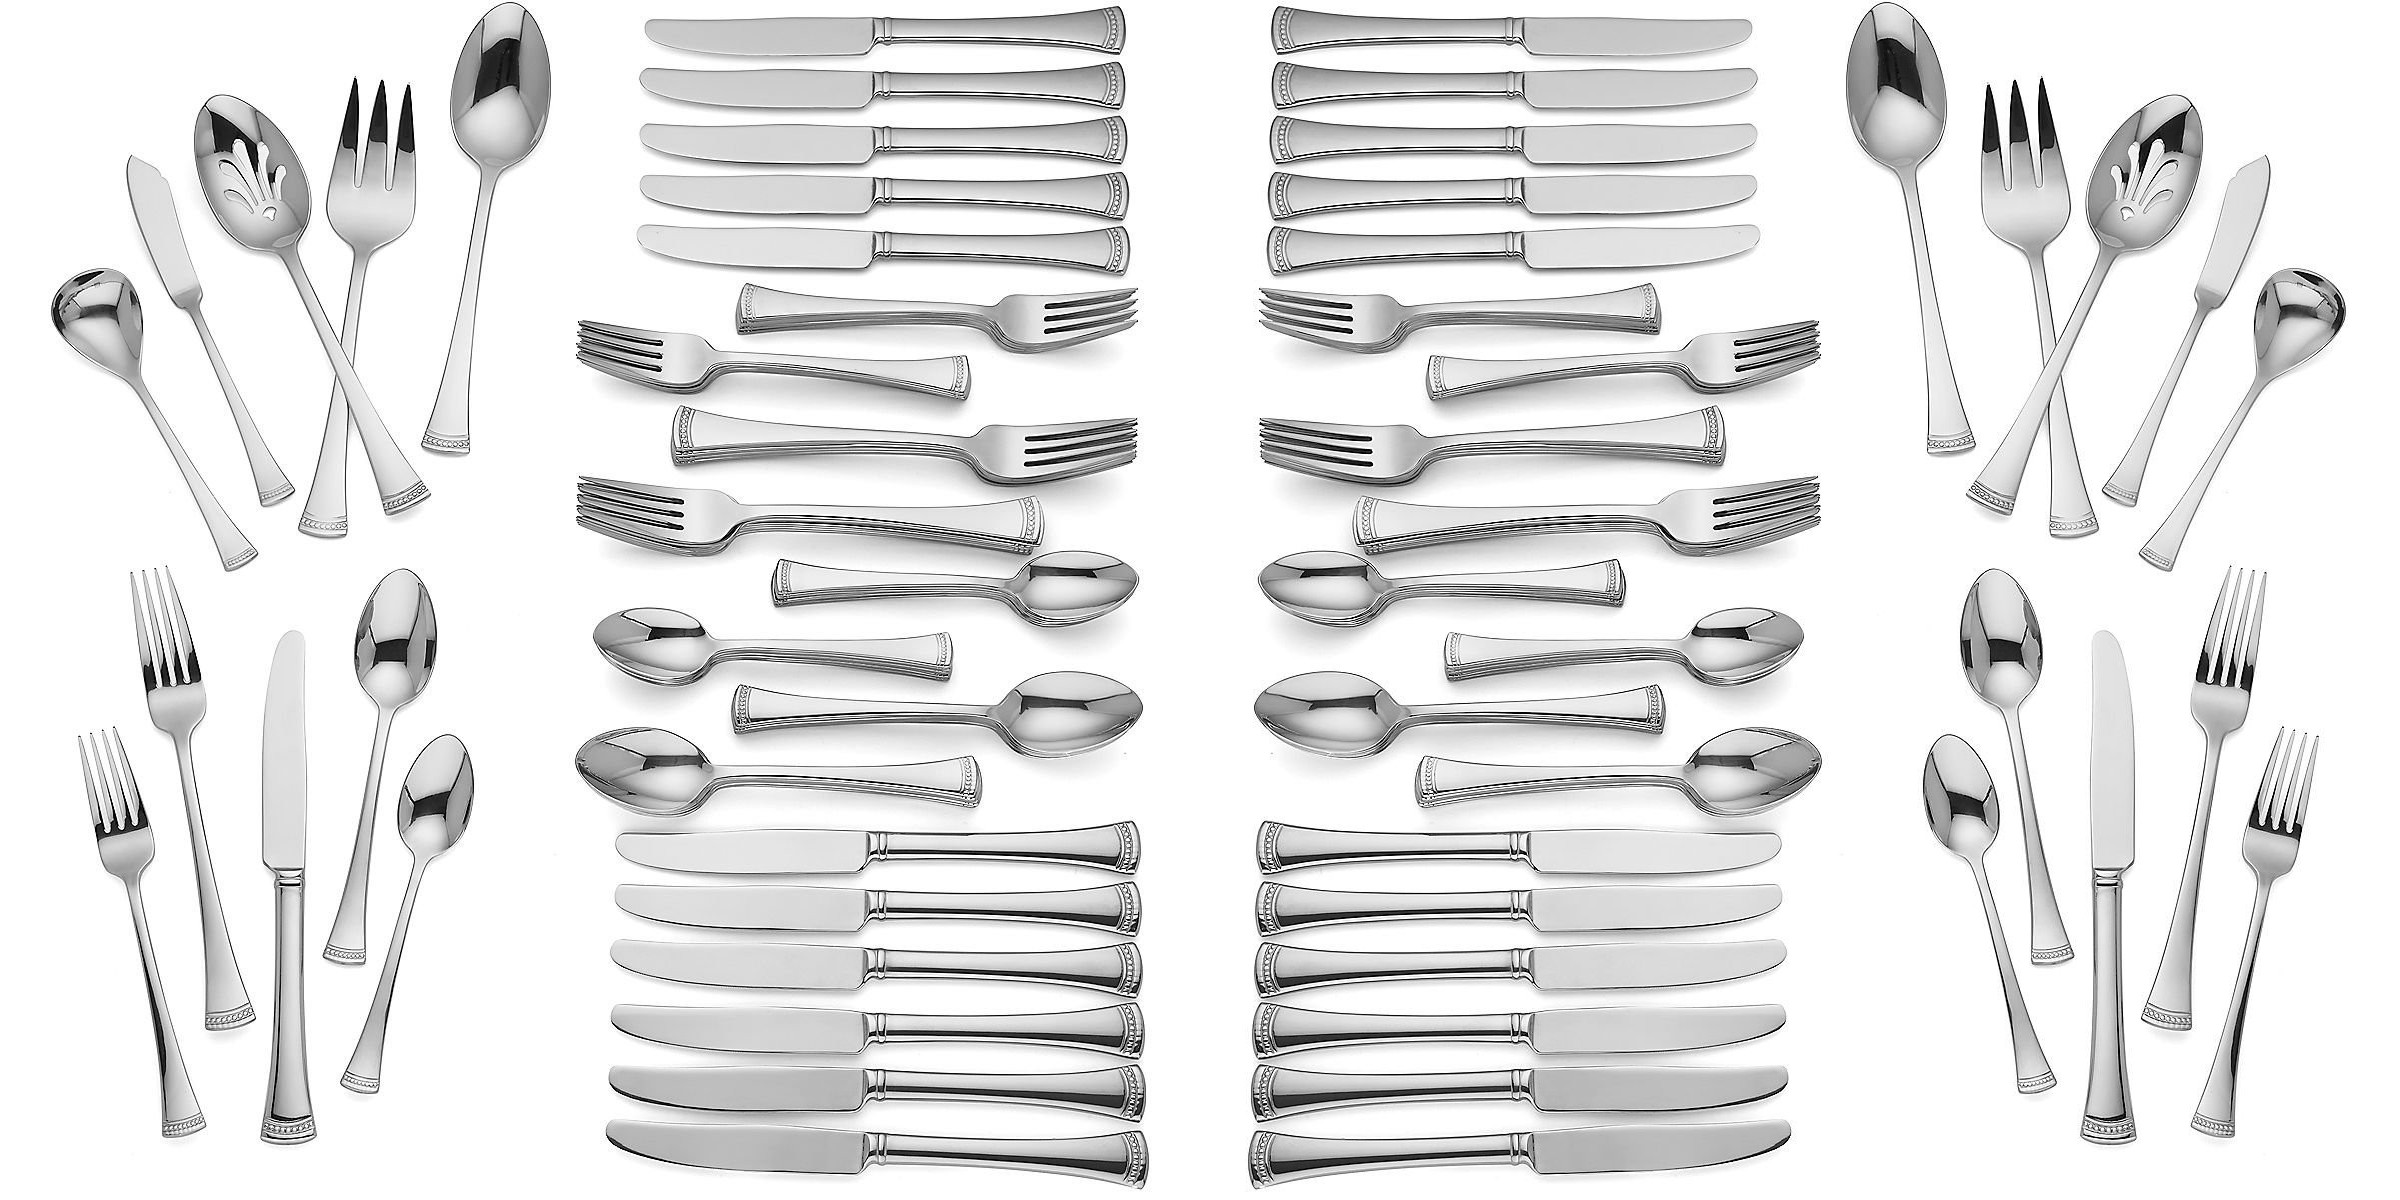 lenox-portola-65-piece-flatware-utensil-set